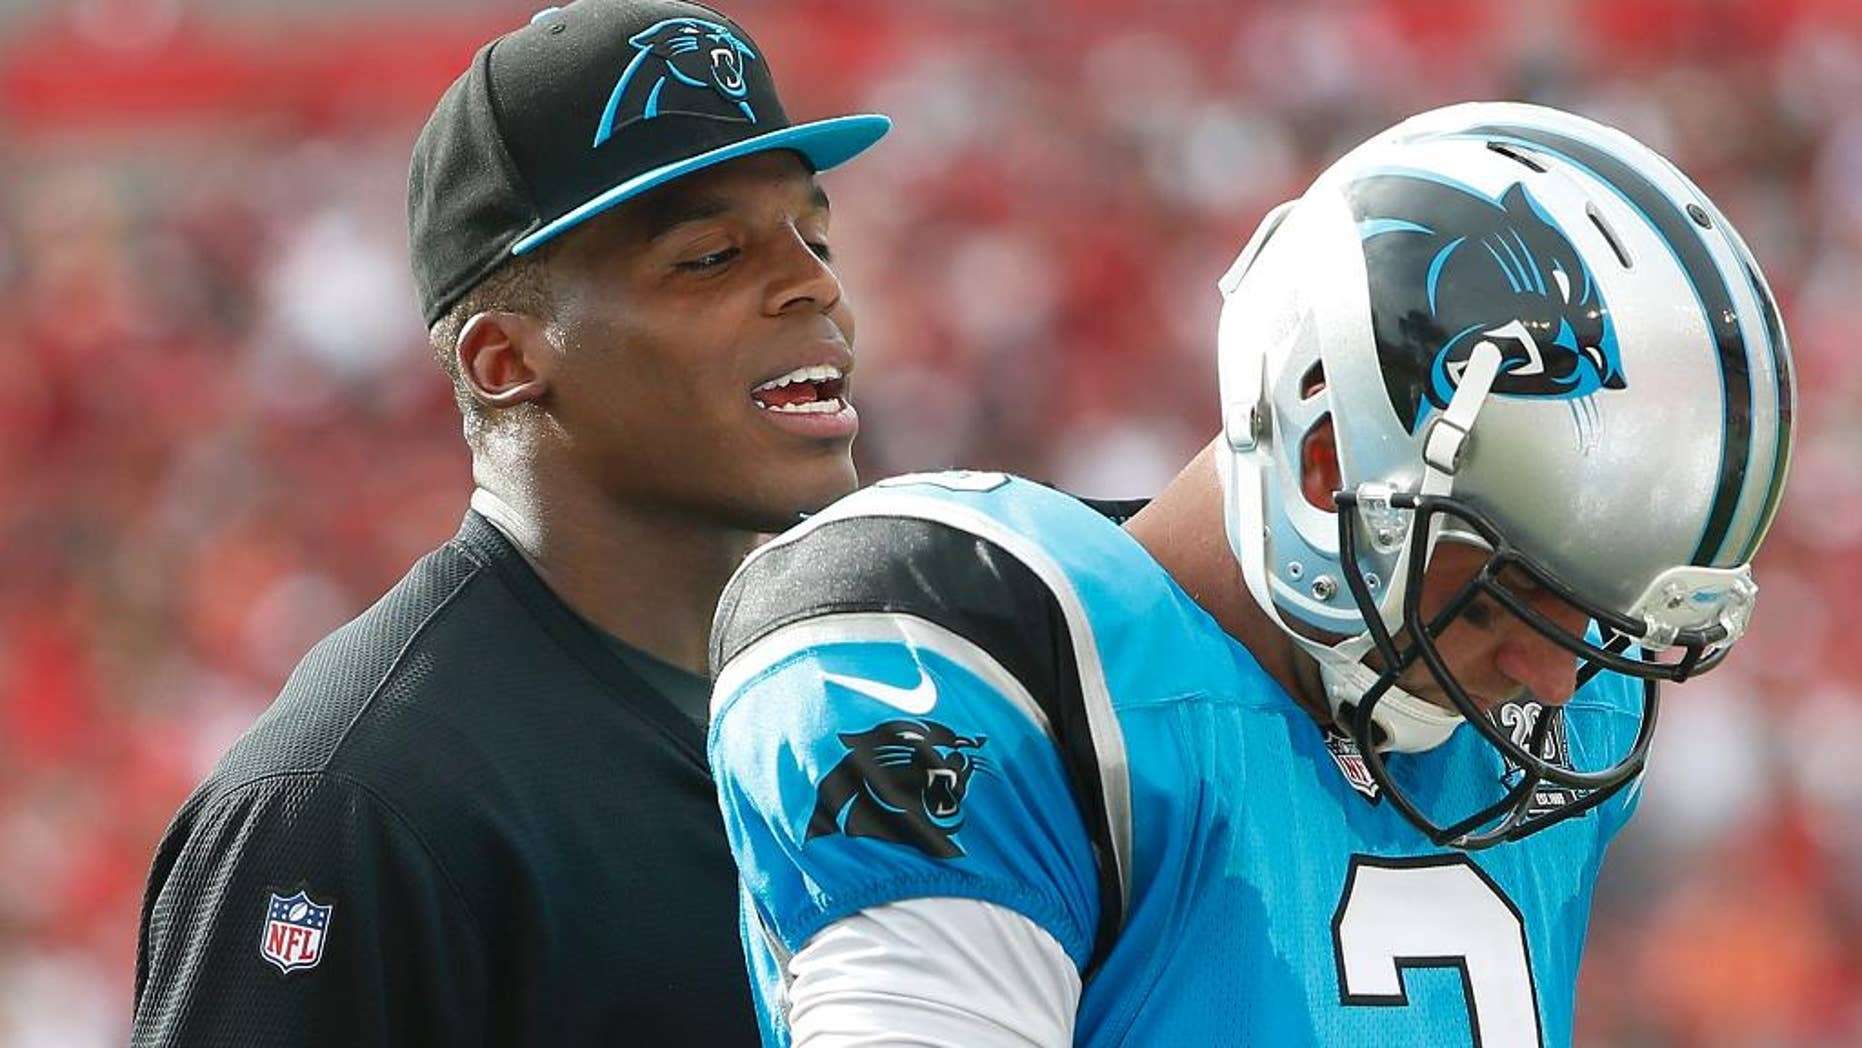 FILE - In this Sept. 7, 2014, file photo, Carolina Panthers quarterback Cam Newton, left, talks to quarterback Derek Anderson (3) during the second quarter of an NFL football in Tampa, Fla. Anderson proved he's a solid backup quarterback to have, throwing two TDs in Carolina's win against Tampa Bay. Now the question is if Anderson heads back to the bench or will start next Sunday's home opener against Detroit. (AP Photo/Brian Blanco, File)